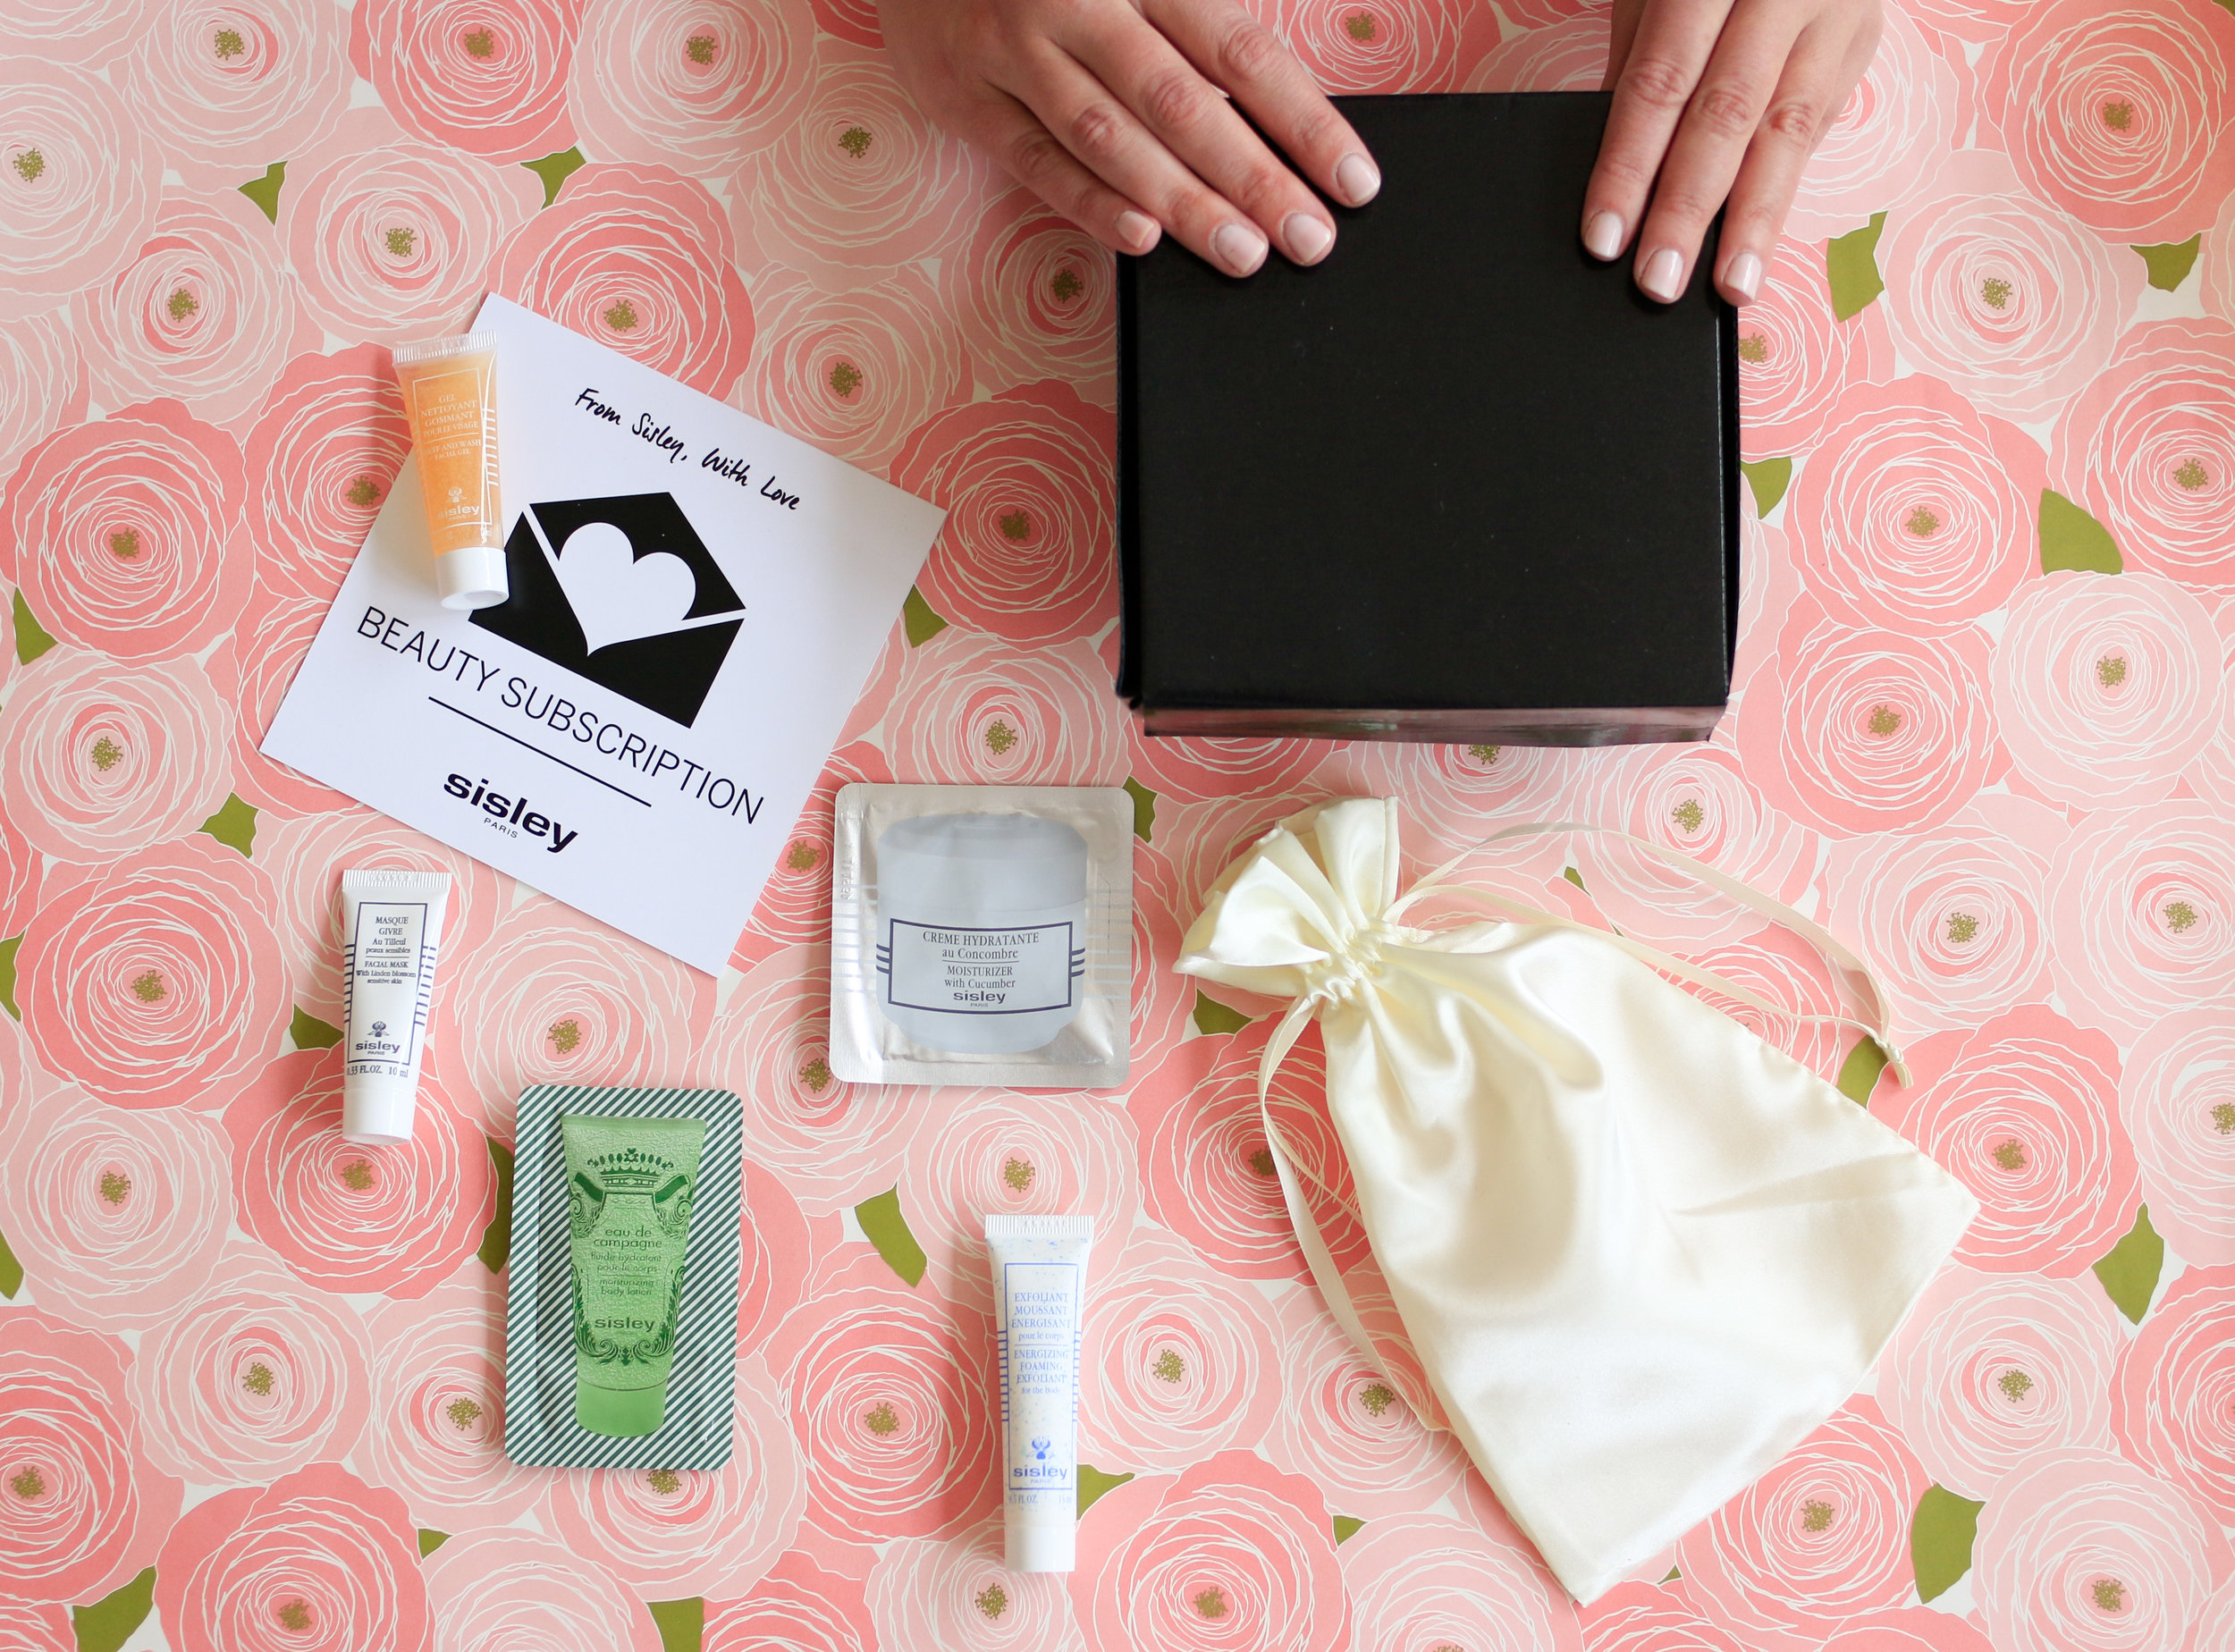 sisley beauty box subscription @rebeccaplotnick